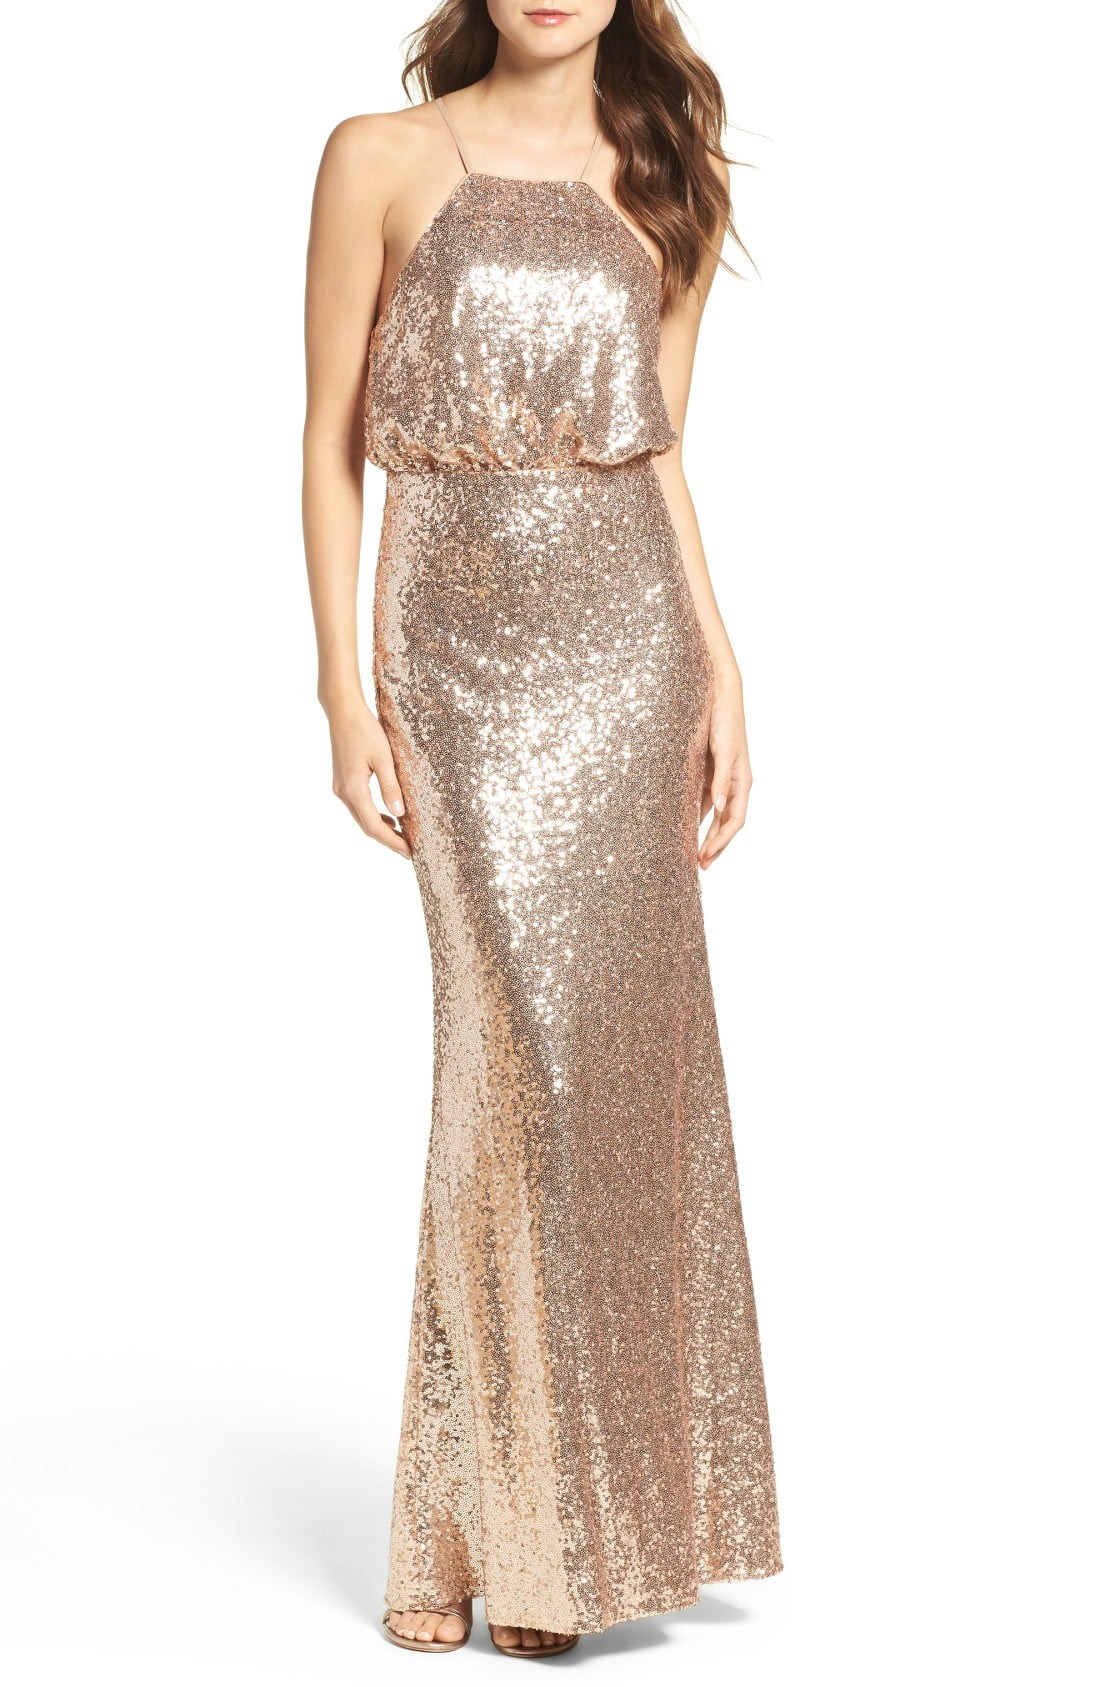 Beaded metallic and sequined bridesmaid dresses nordstrom ombrellifo Images